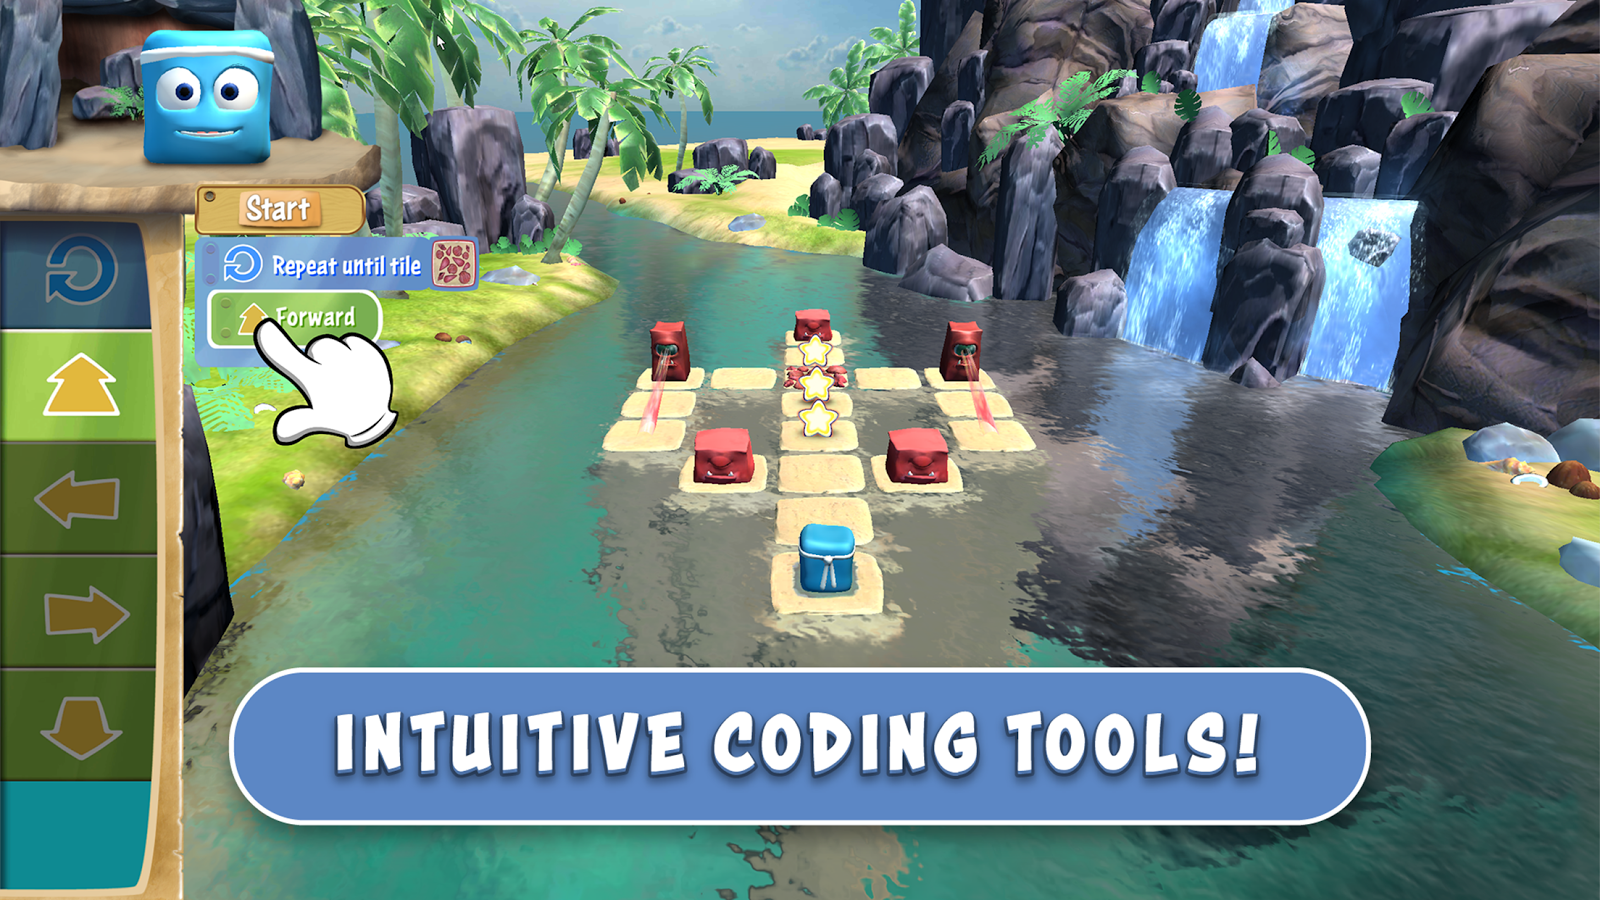 Box Island - Kids Coding Game! (Unreleased) Screenshot 11